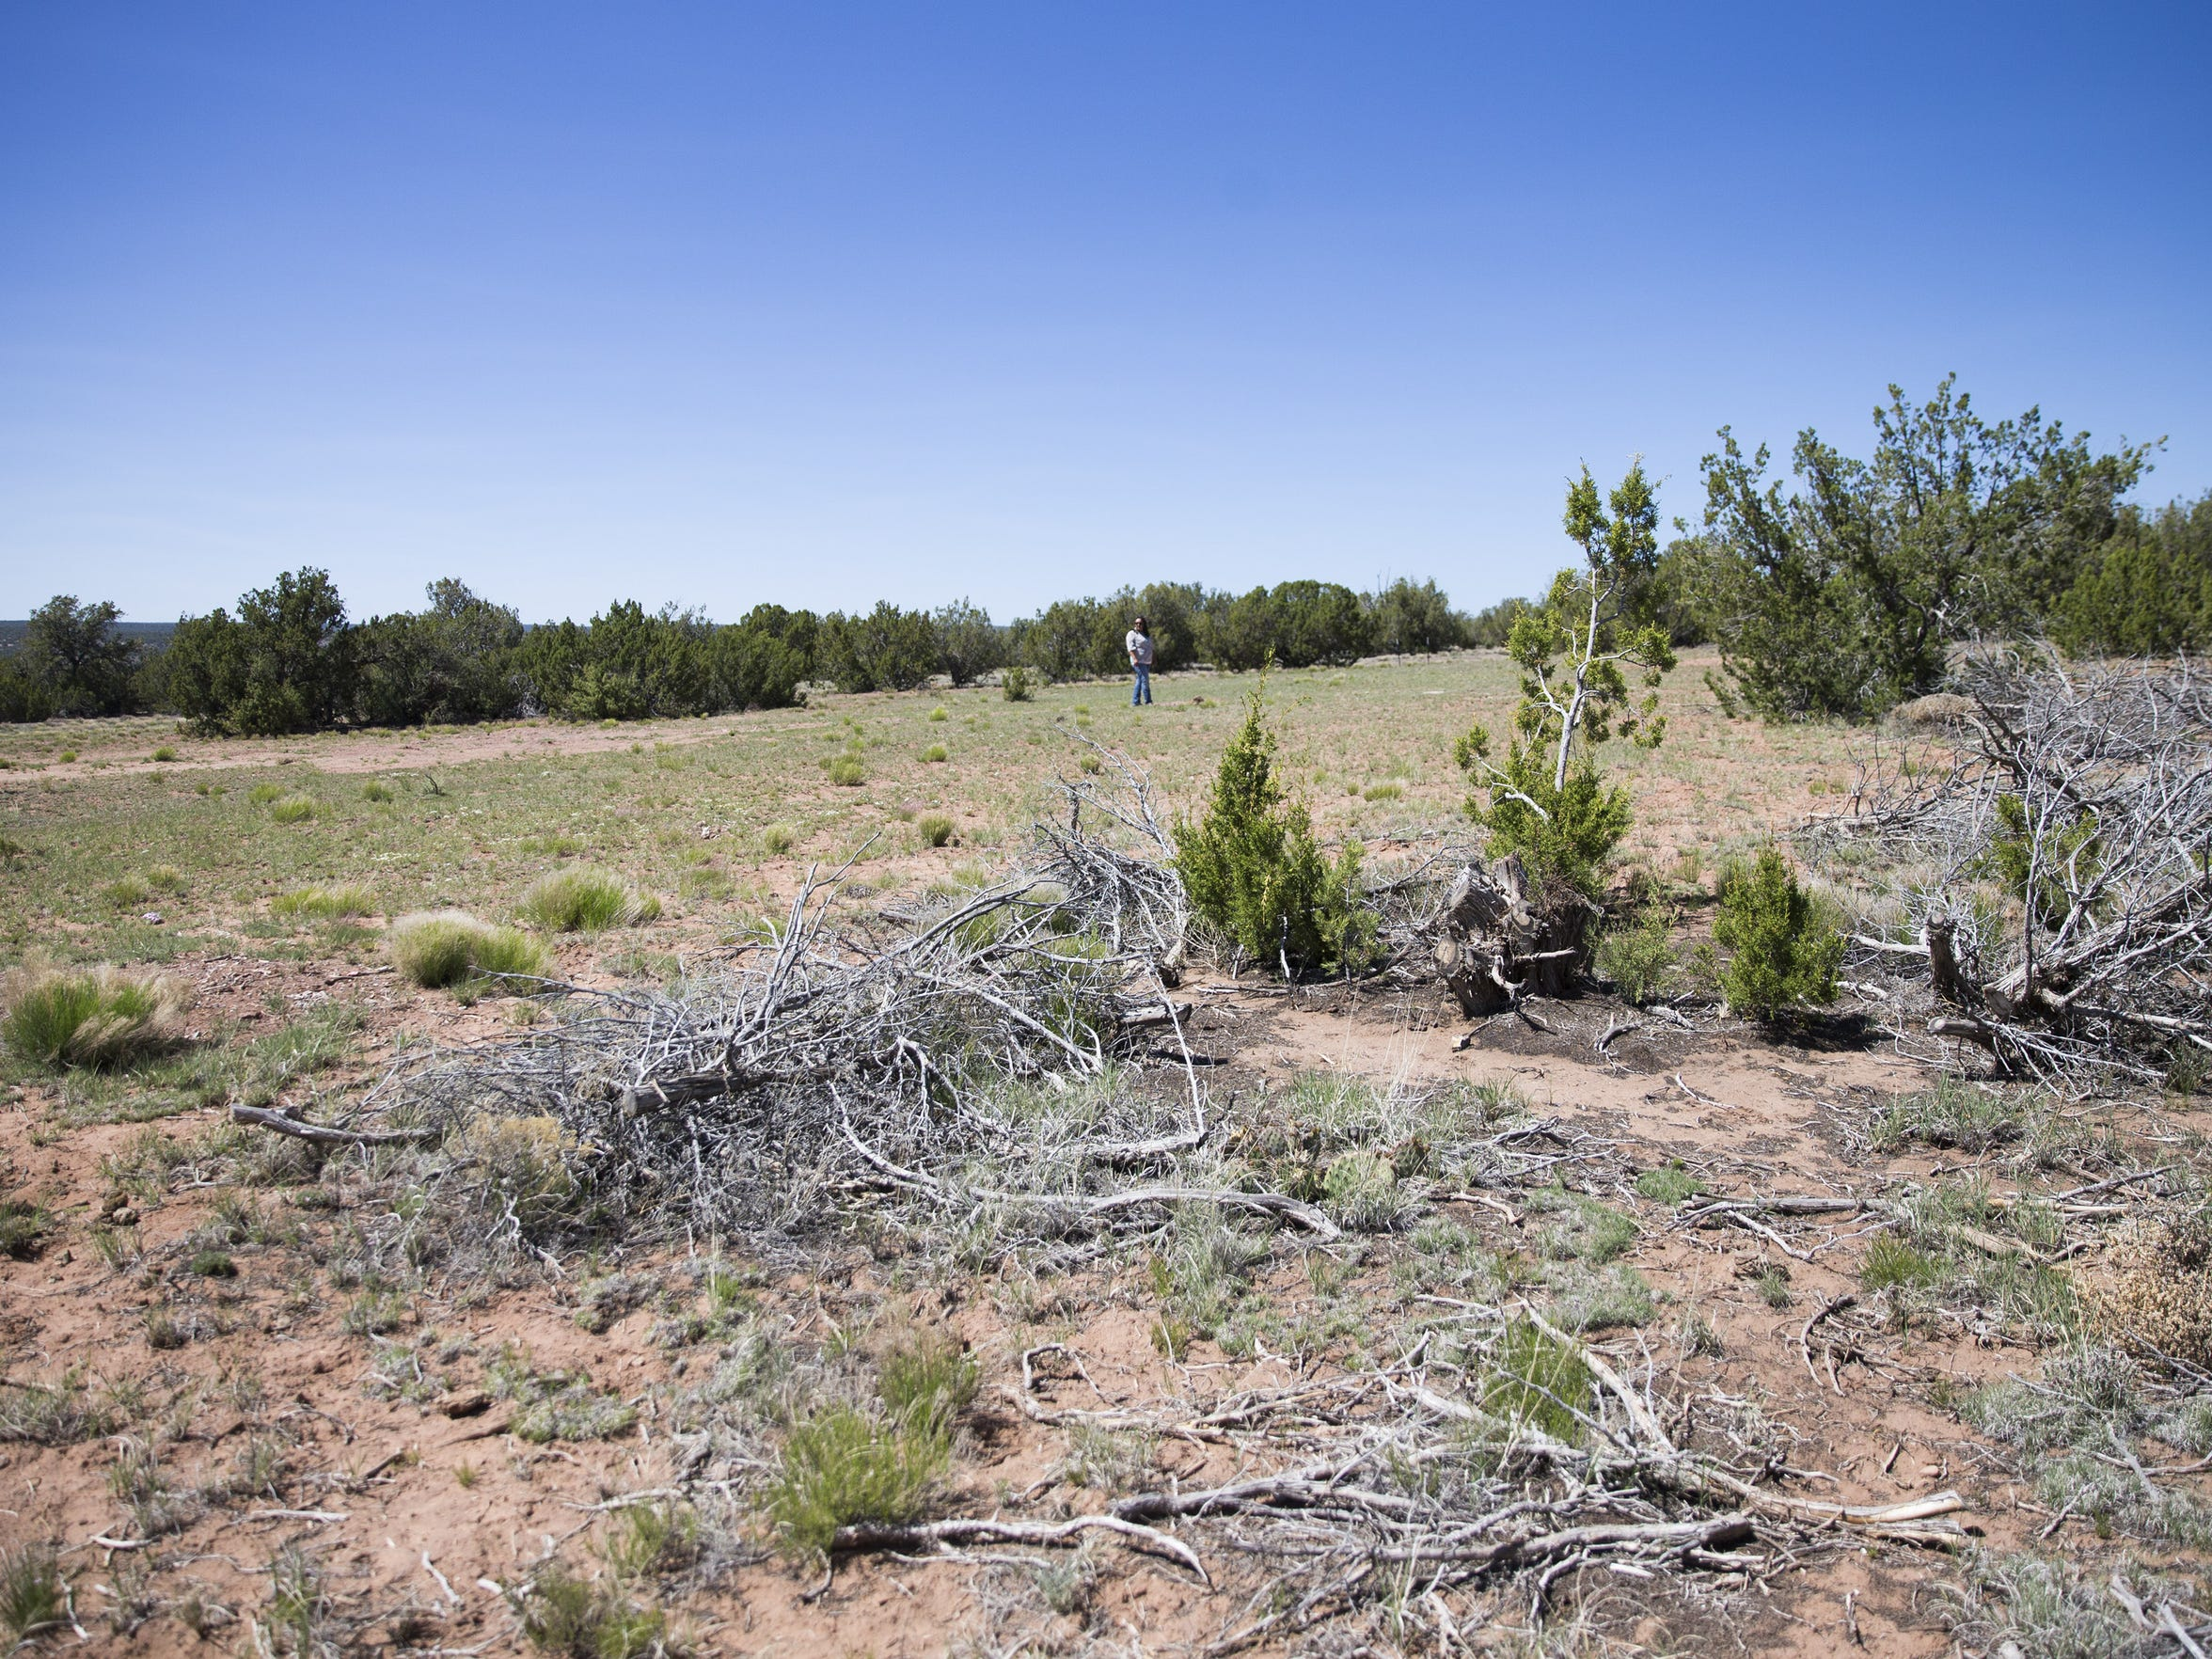 Though the Navajo Housing Authority held a ribbon-cutting ceremony in 2014, construction has not yet begun on the Bluestone Development near Houck, Ariz.